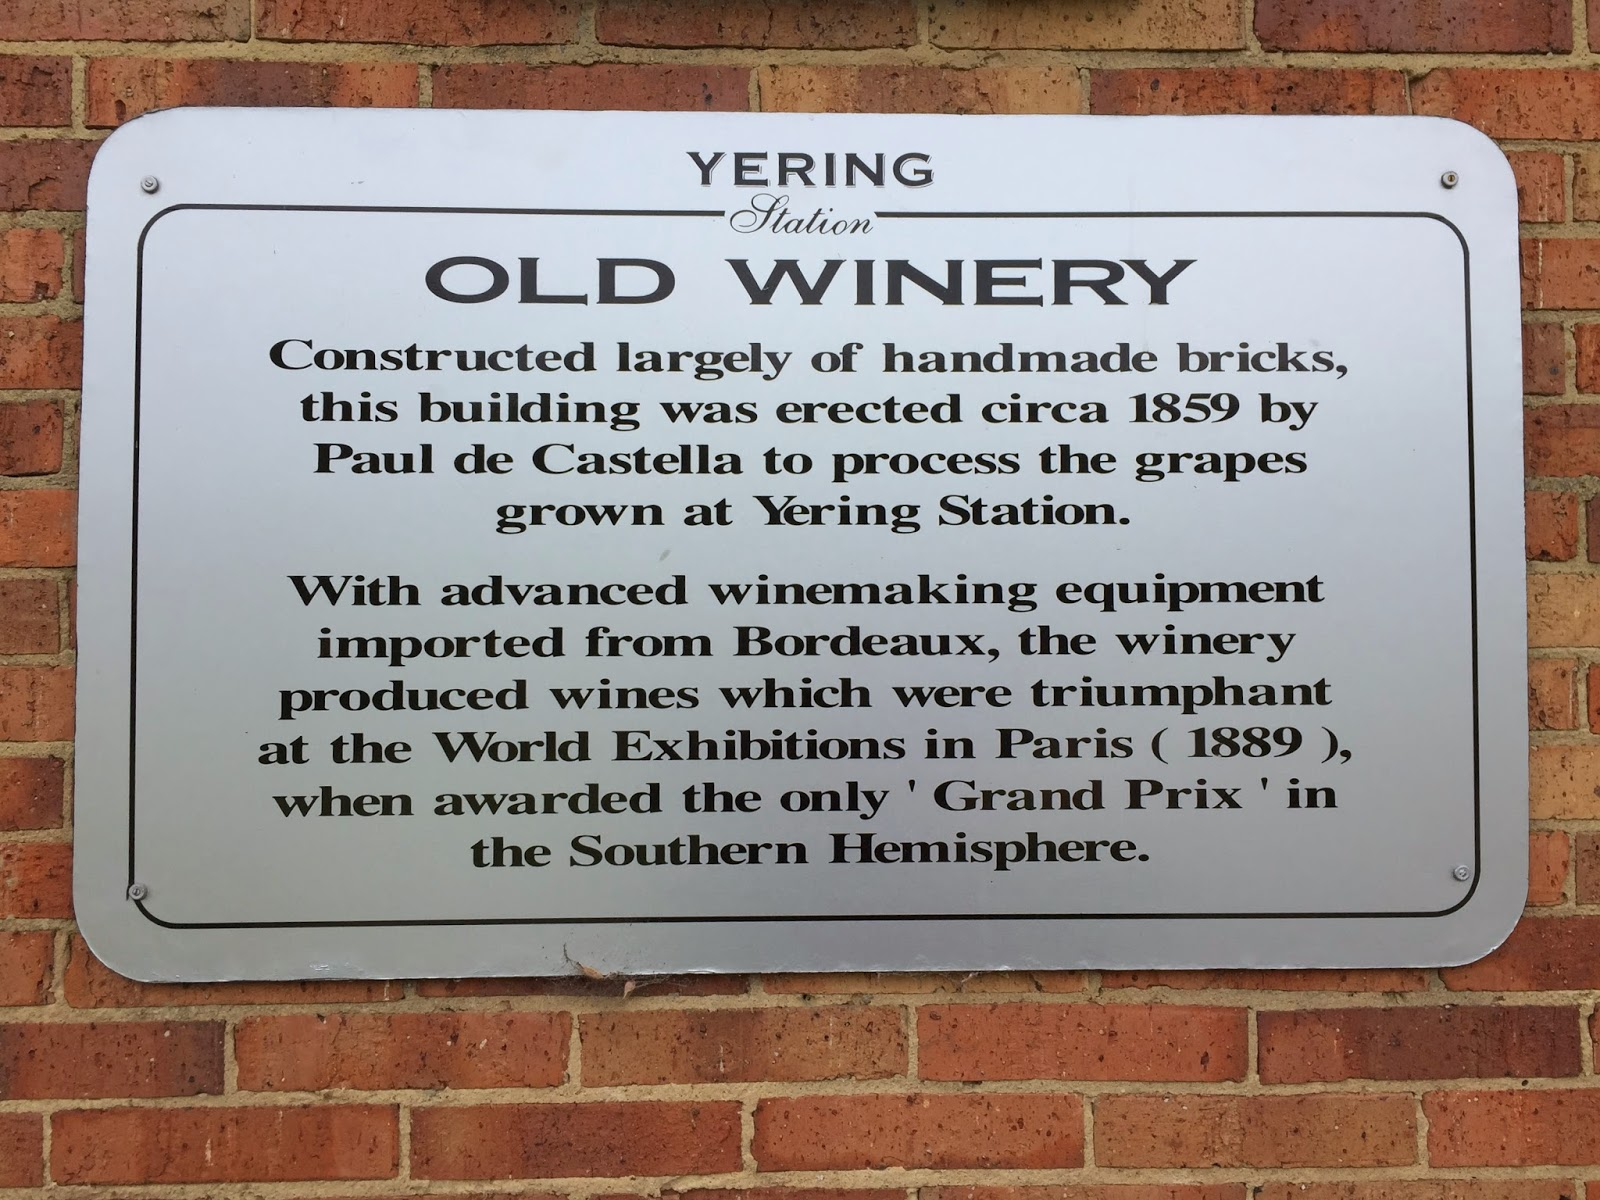 wine history More than 160 years of success and challenge have shaped this premier wine region.